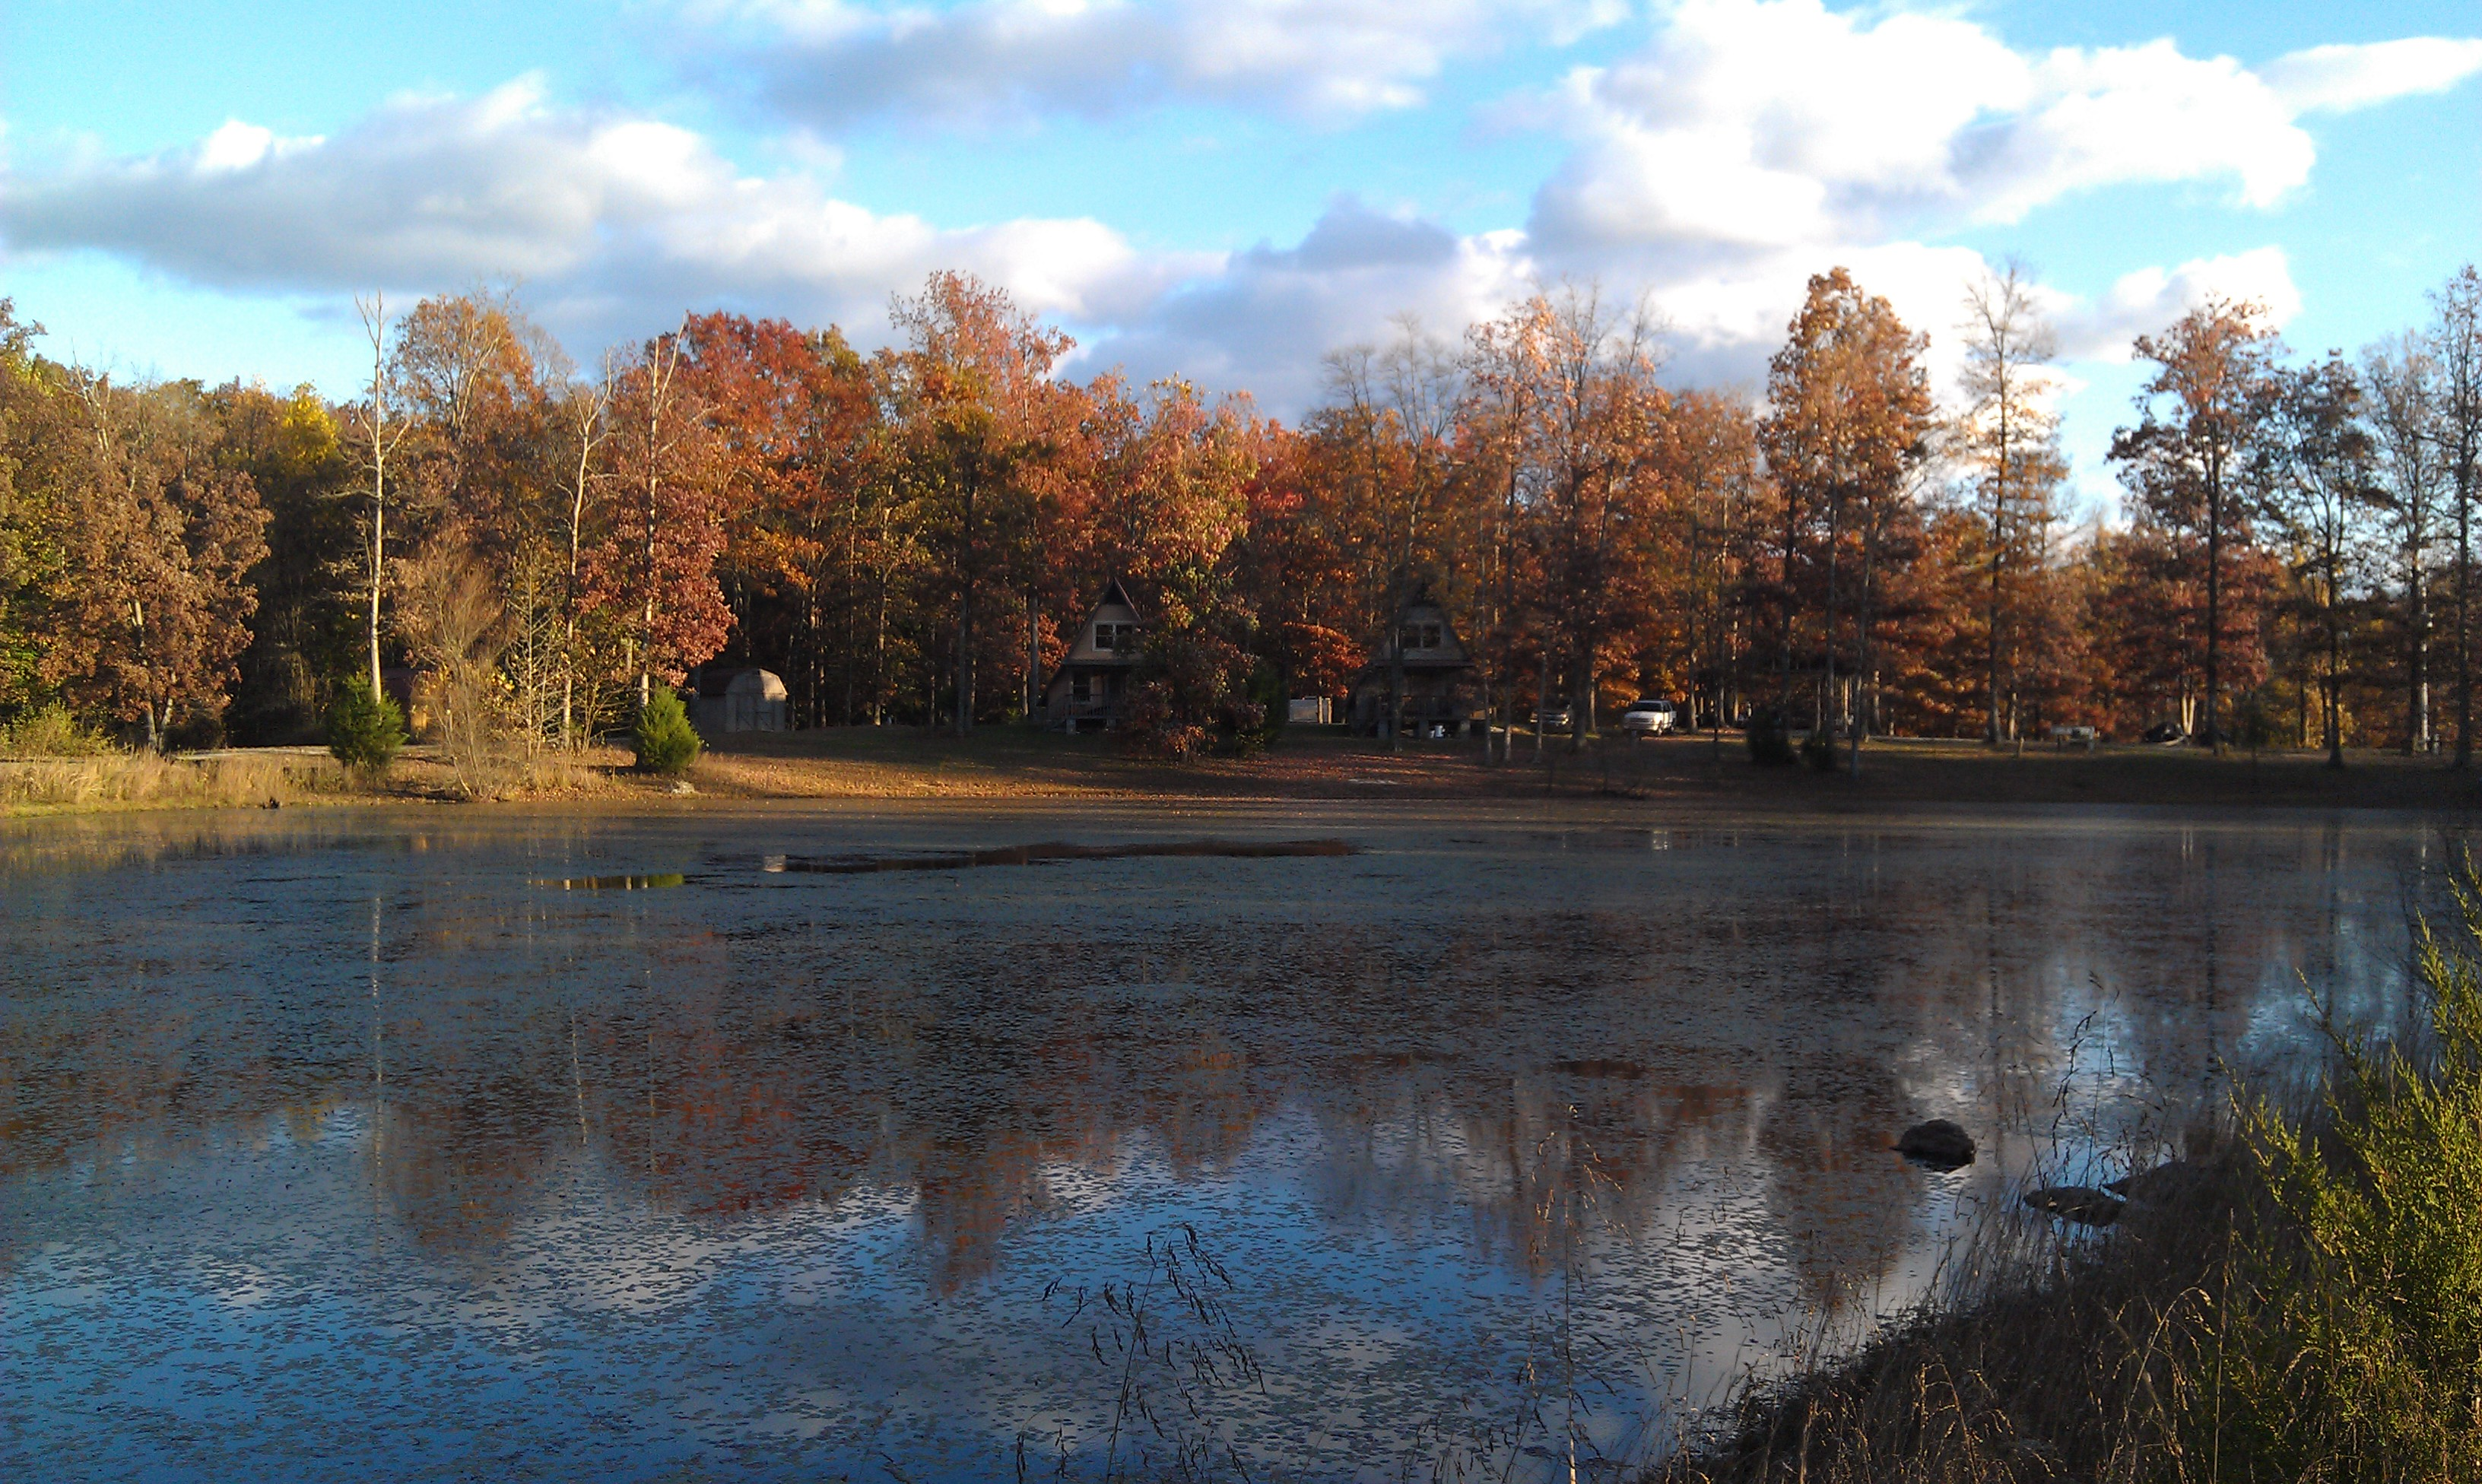 Campground in Autumn from across pond